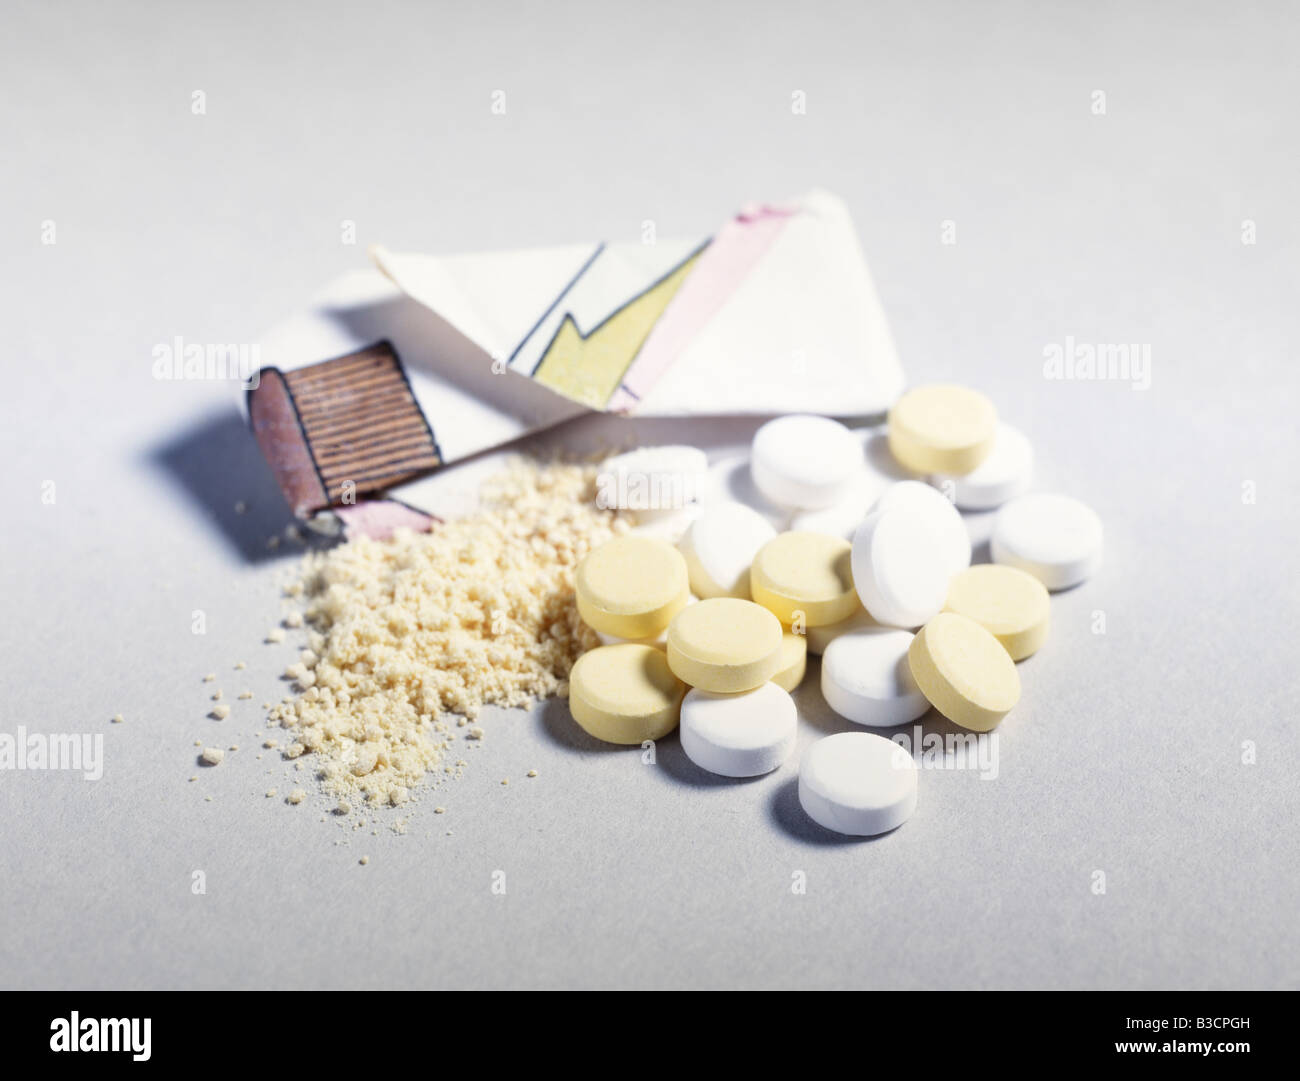 Amphetamines Pills powder and a wrap - Stock Image